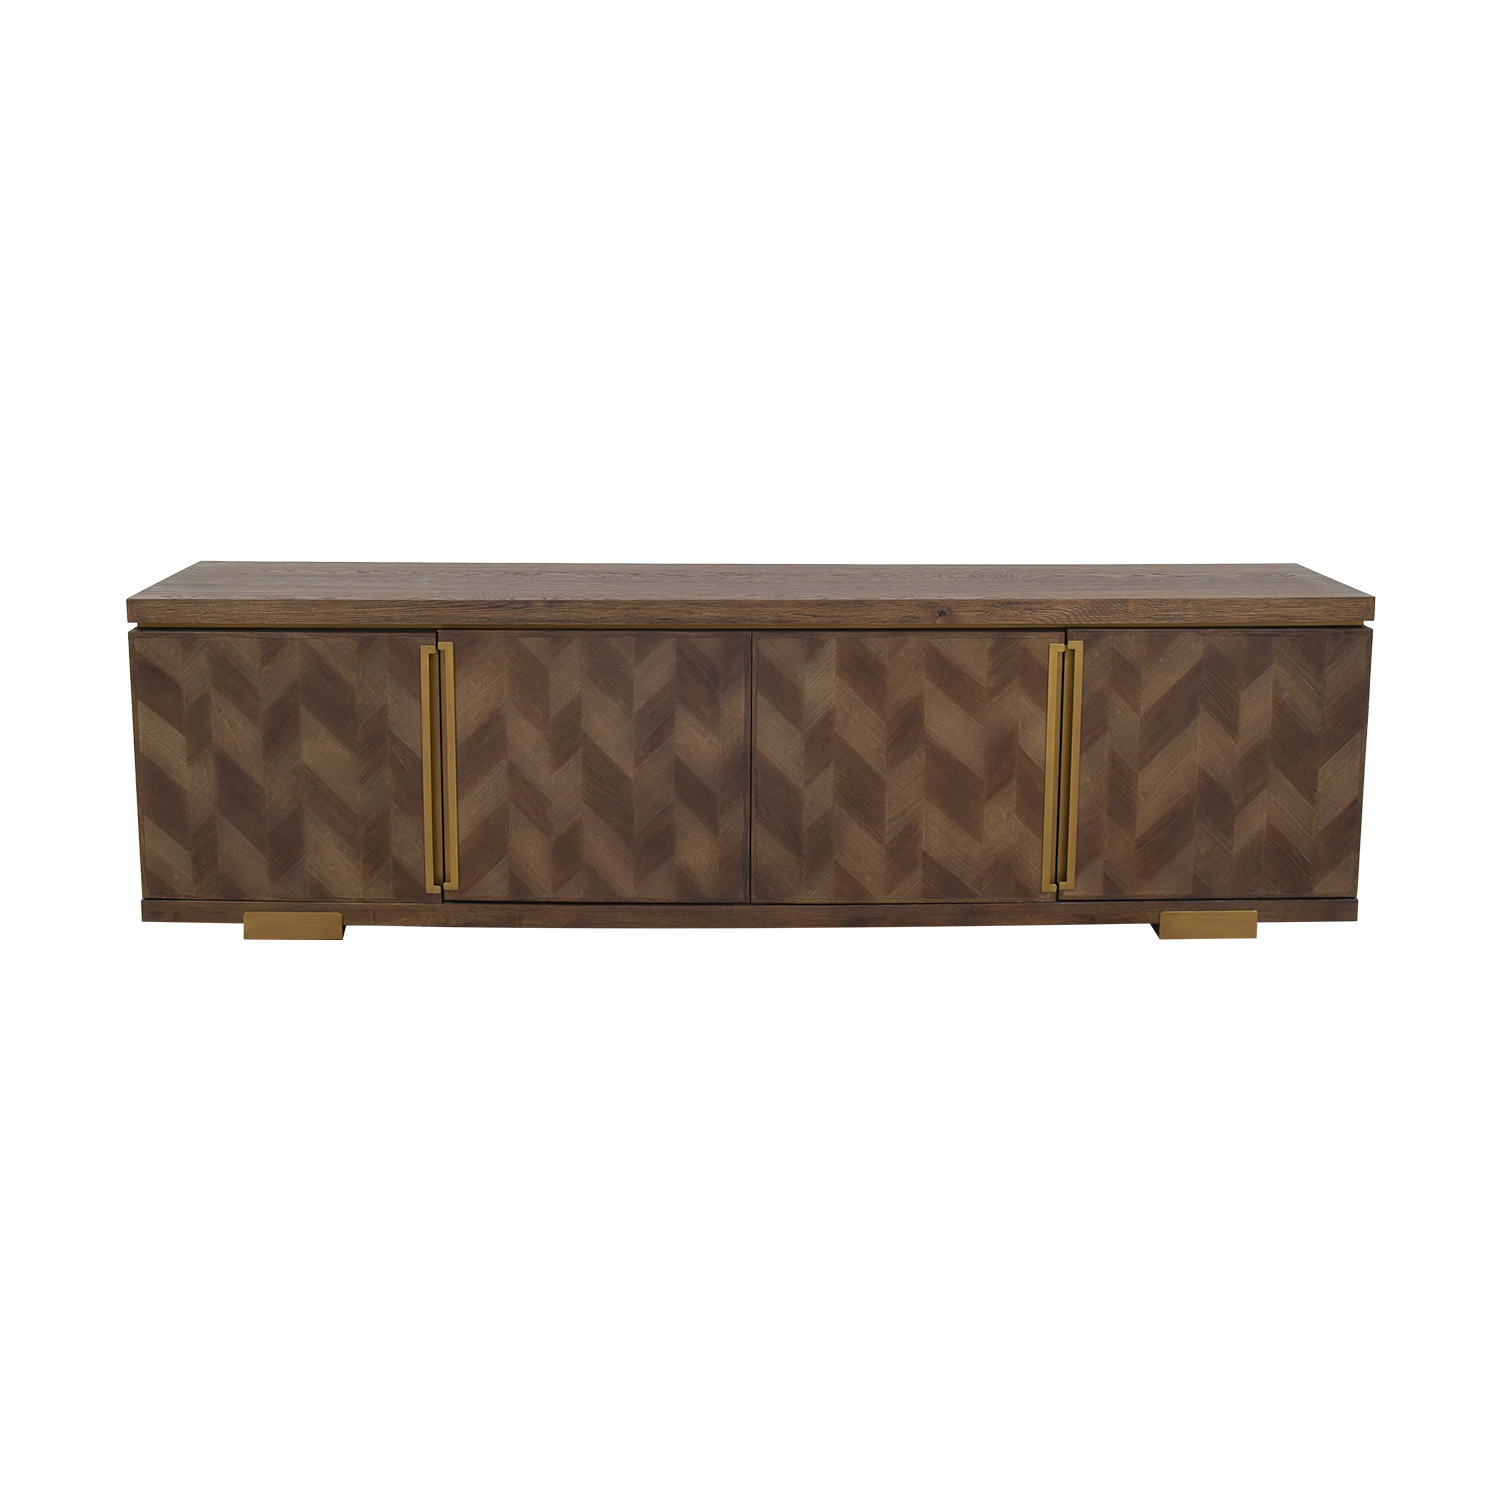 ABC Carpet & Home ABC Carpet & Home Chevron Sideboard price